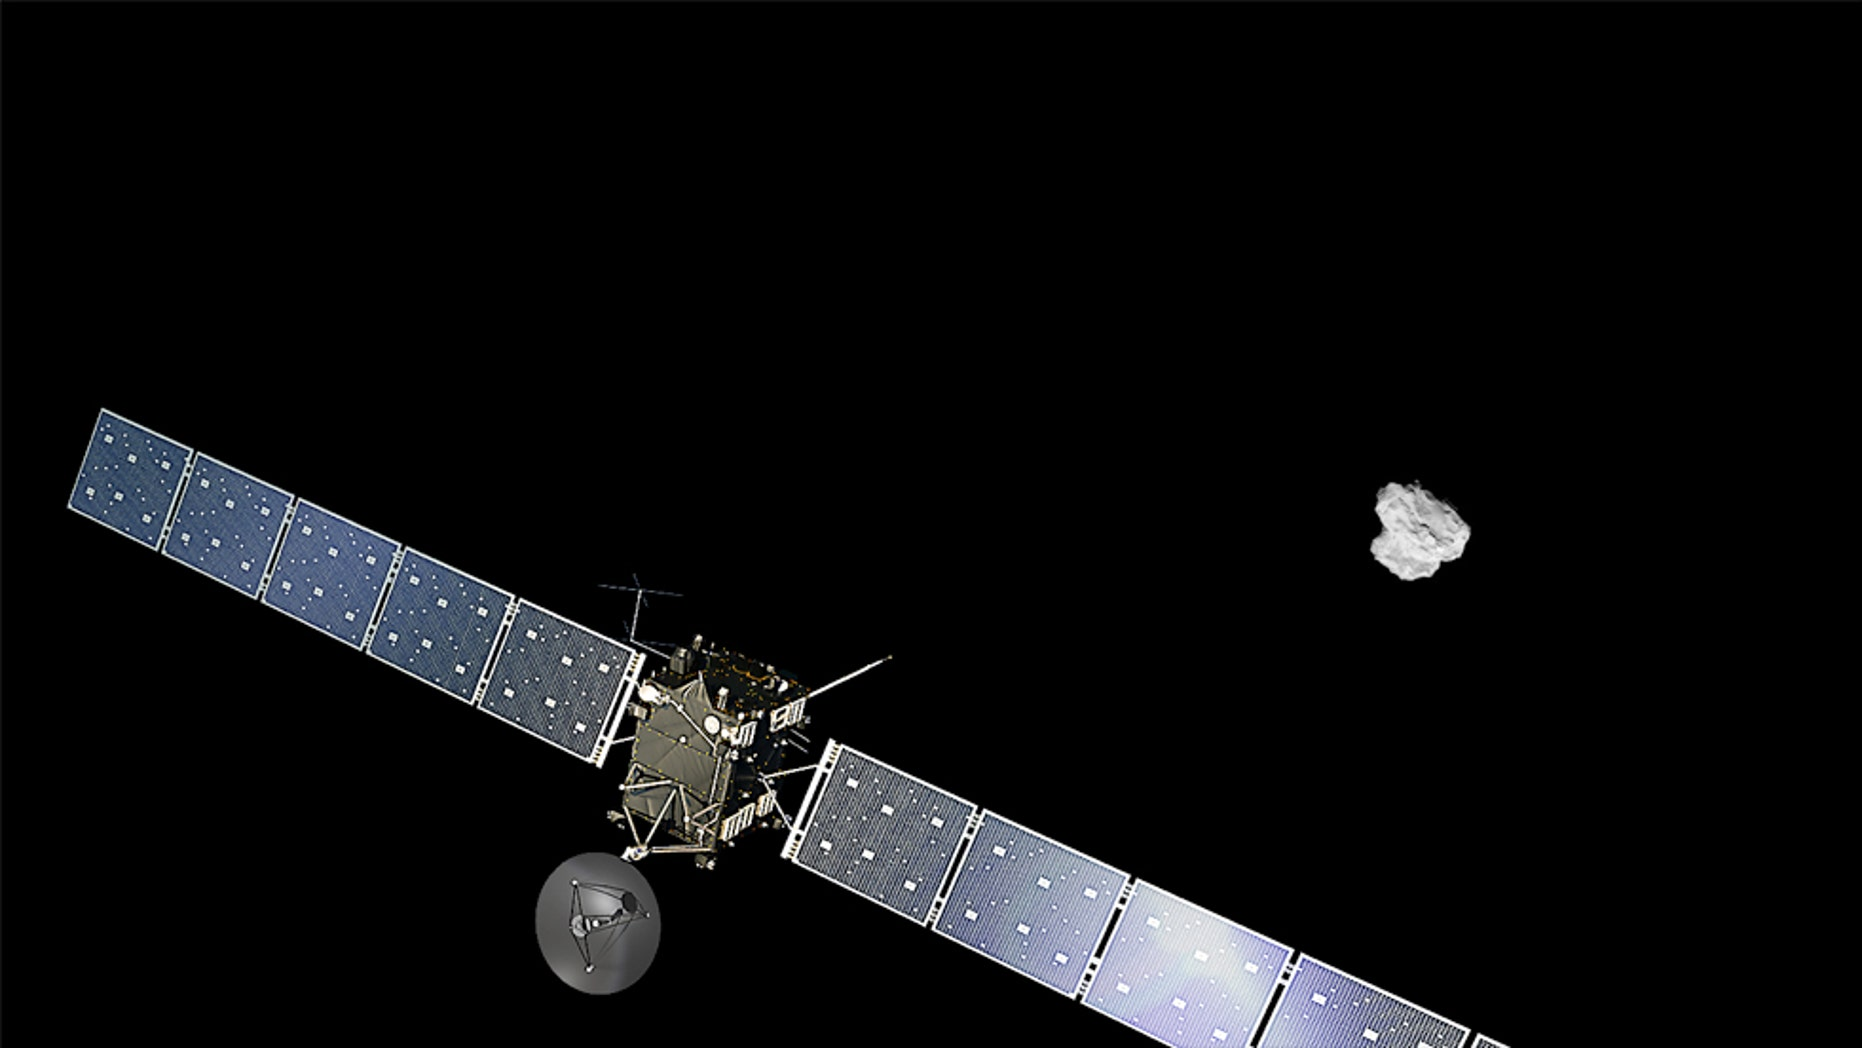 Artist impression of ESA's Rosetta approaching comet 67P/Churyumov-Gerasimenko. The comet image was taken on 2 August 2014 by the spacecraft's navigation camera at a distance of about 500 km. The spacecraft and comet are not to scale. (ESA/ATG medialab; Comet image: ESA/Rosetta/NAVCAM)